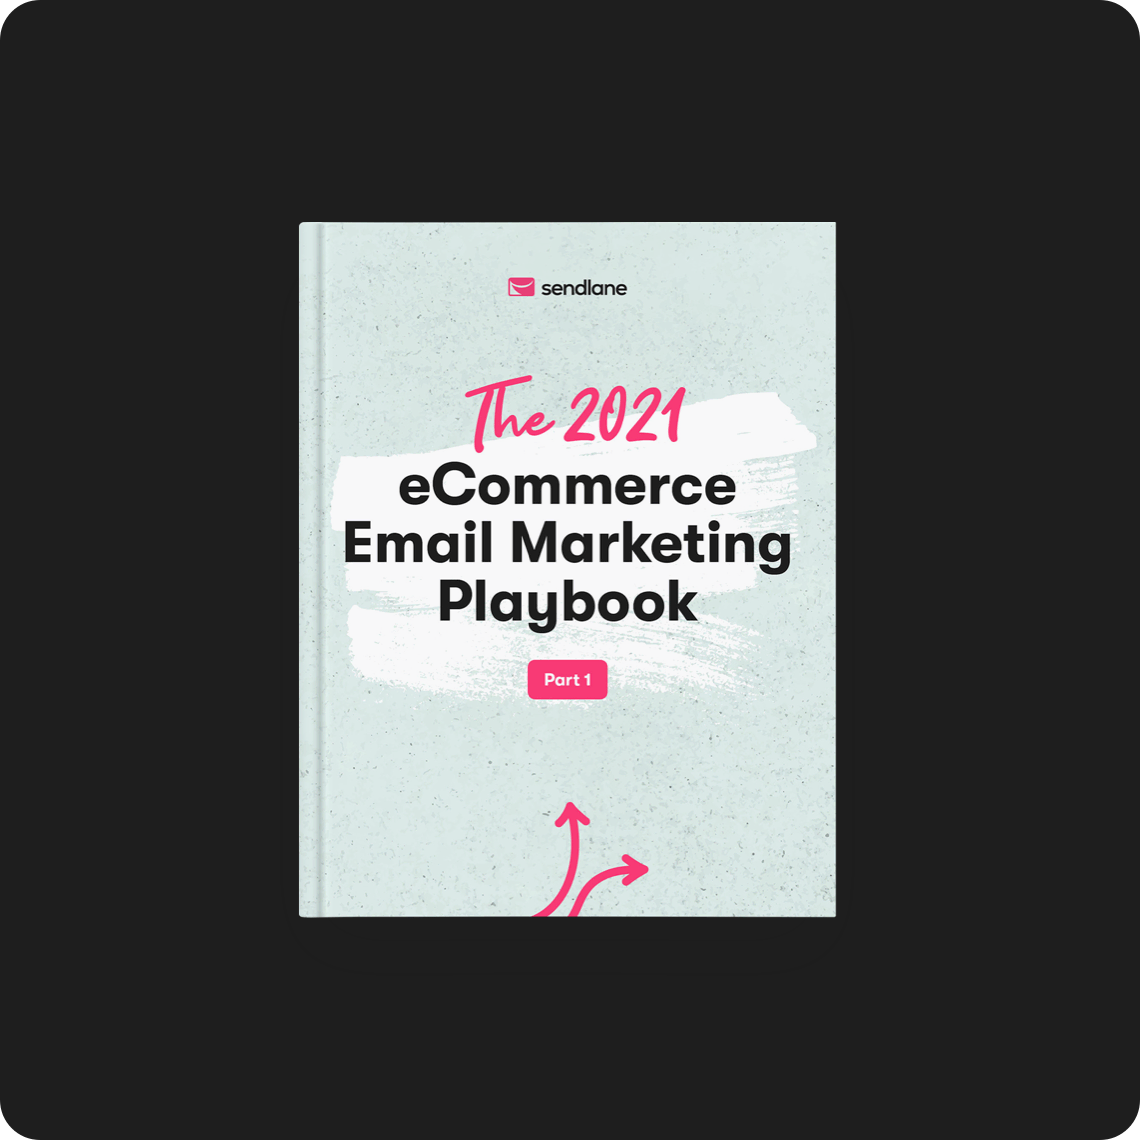 The 2021 eCommerce Email Marketing Playbook Part 1